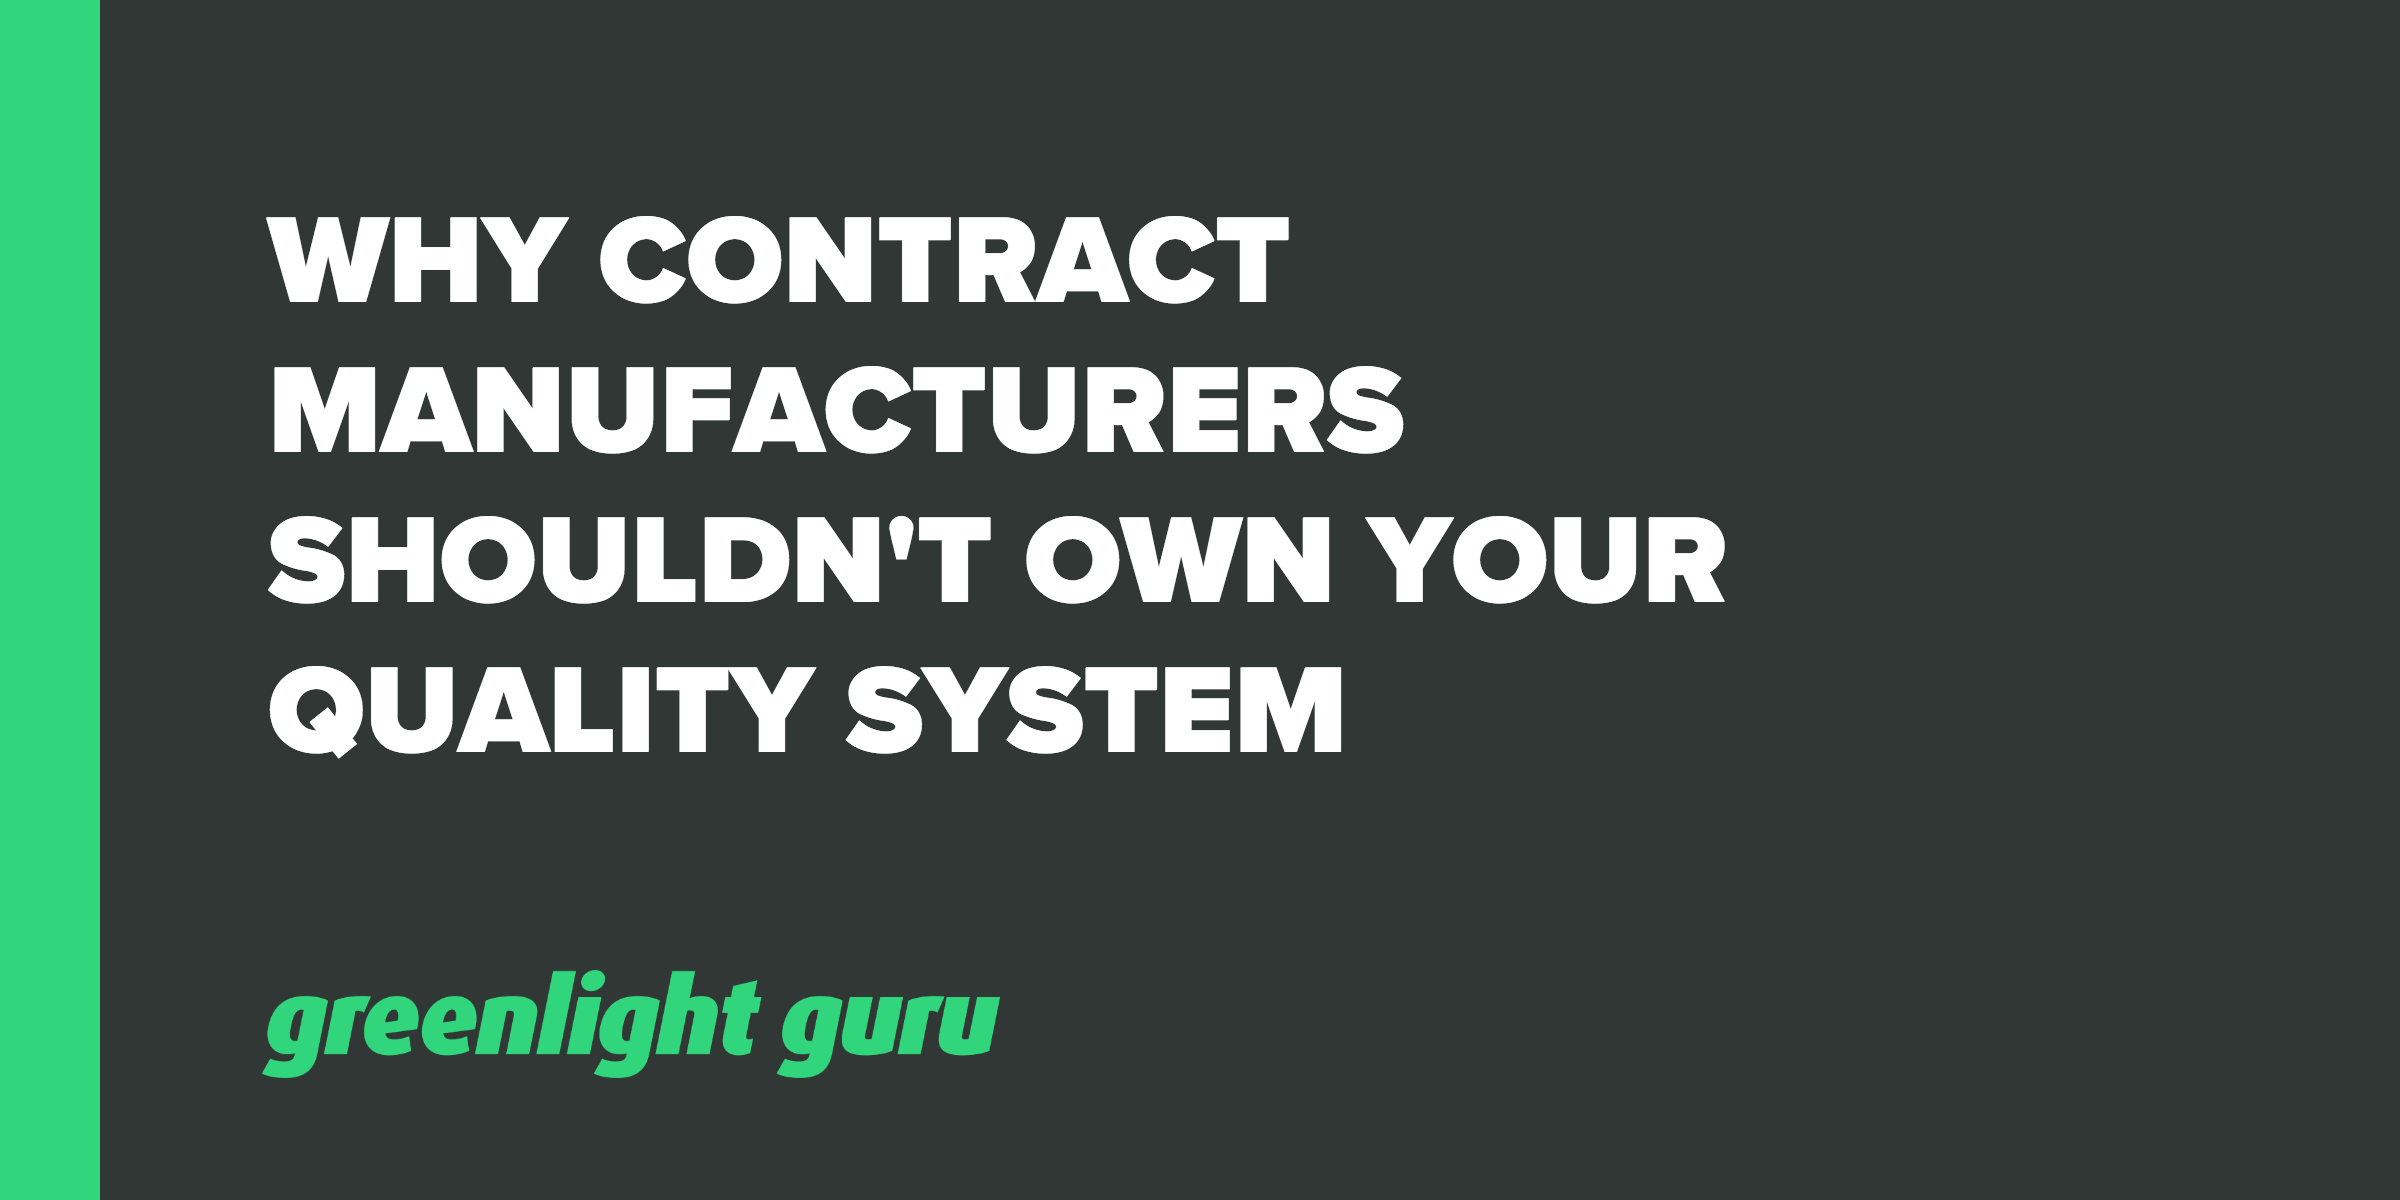 contract_manufacturers_should_not_own_quality